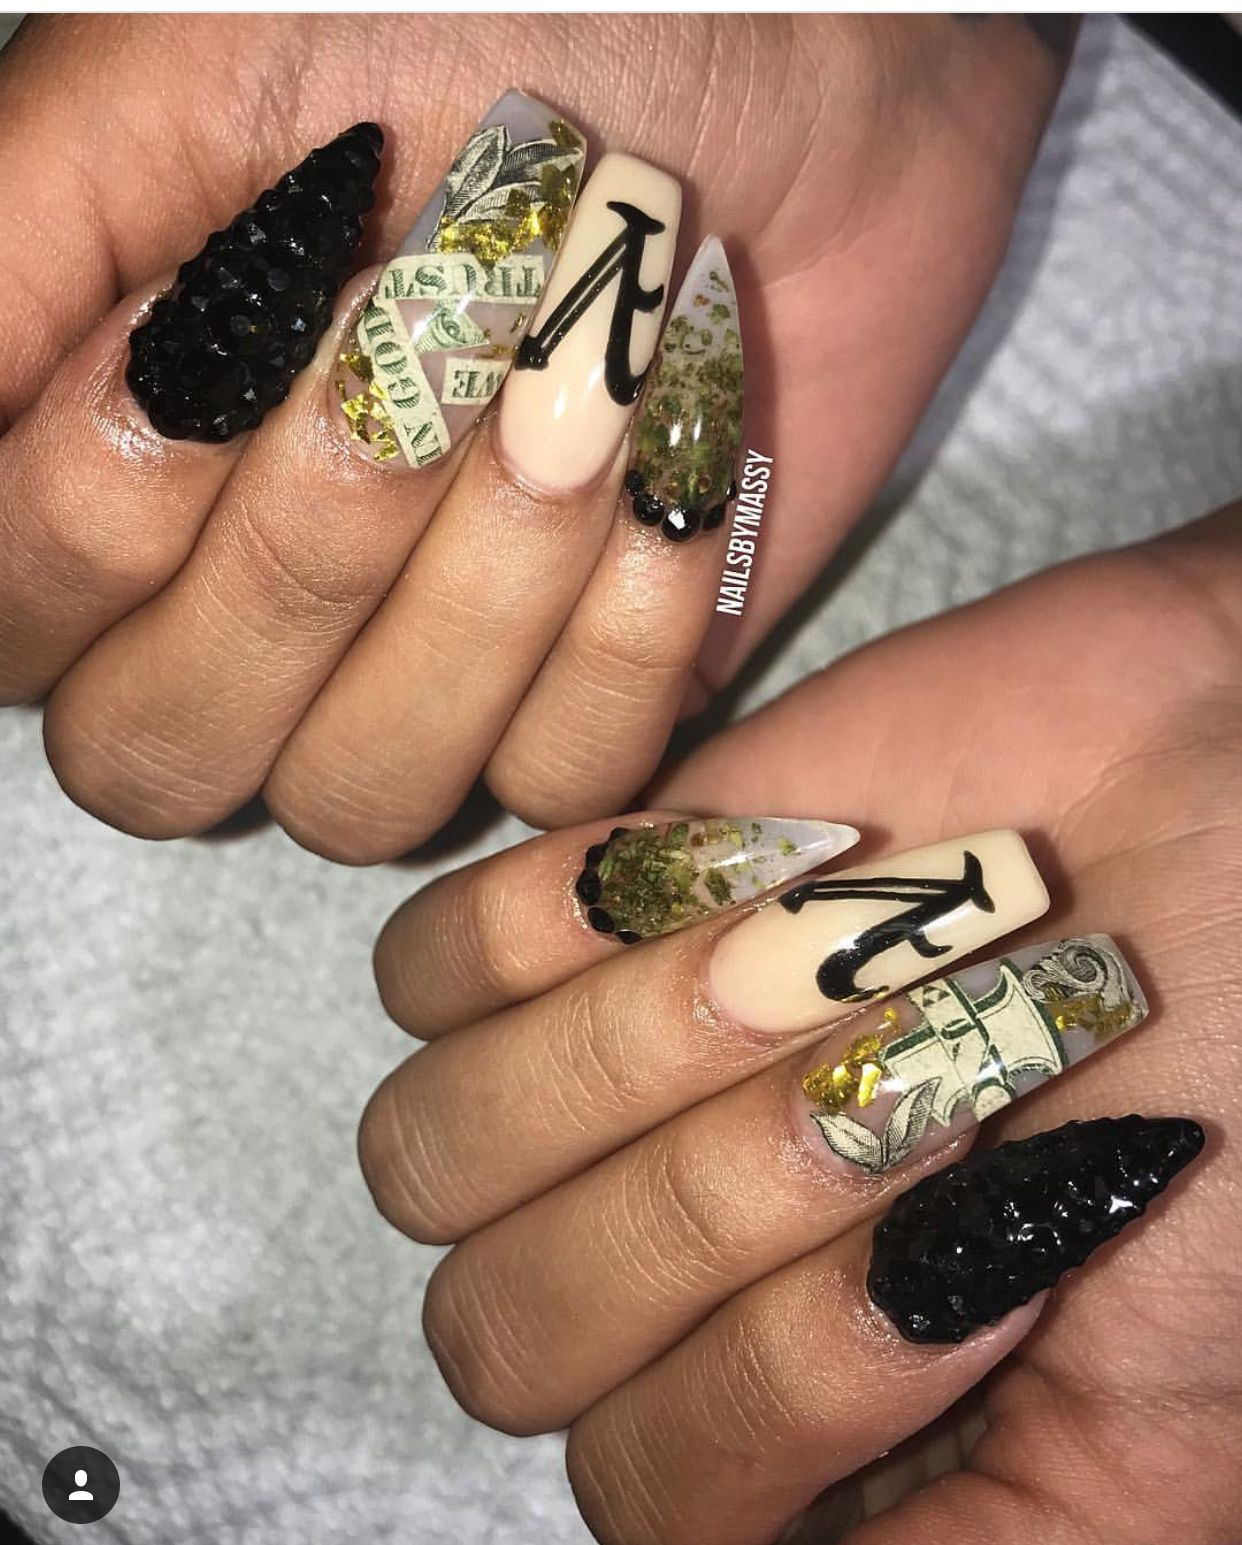 Weed Nails, Simple Nail Designs, Dope Nails, Nails Design, Acrylics, Claws,  Acrylic Nails, Acrylic Nail Designs - Pin By Firstluv 👑💙💛🖤 On Nail Sprung Pinterest Dope Nails